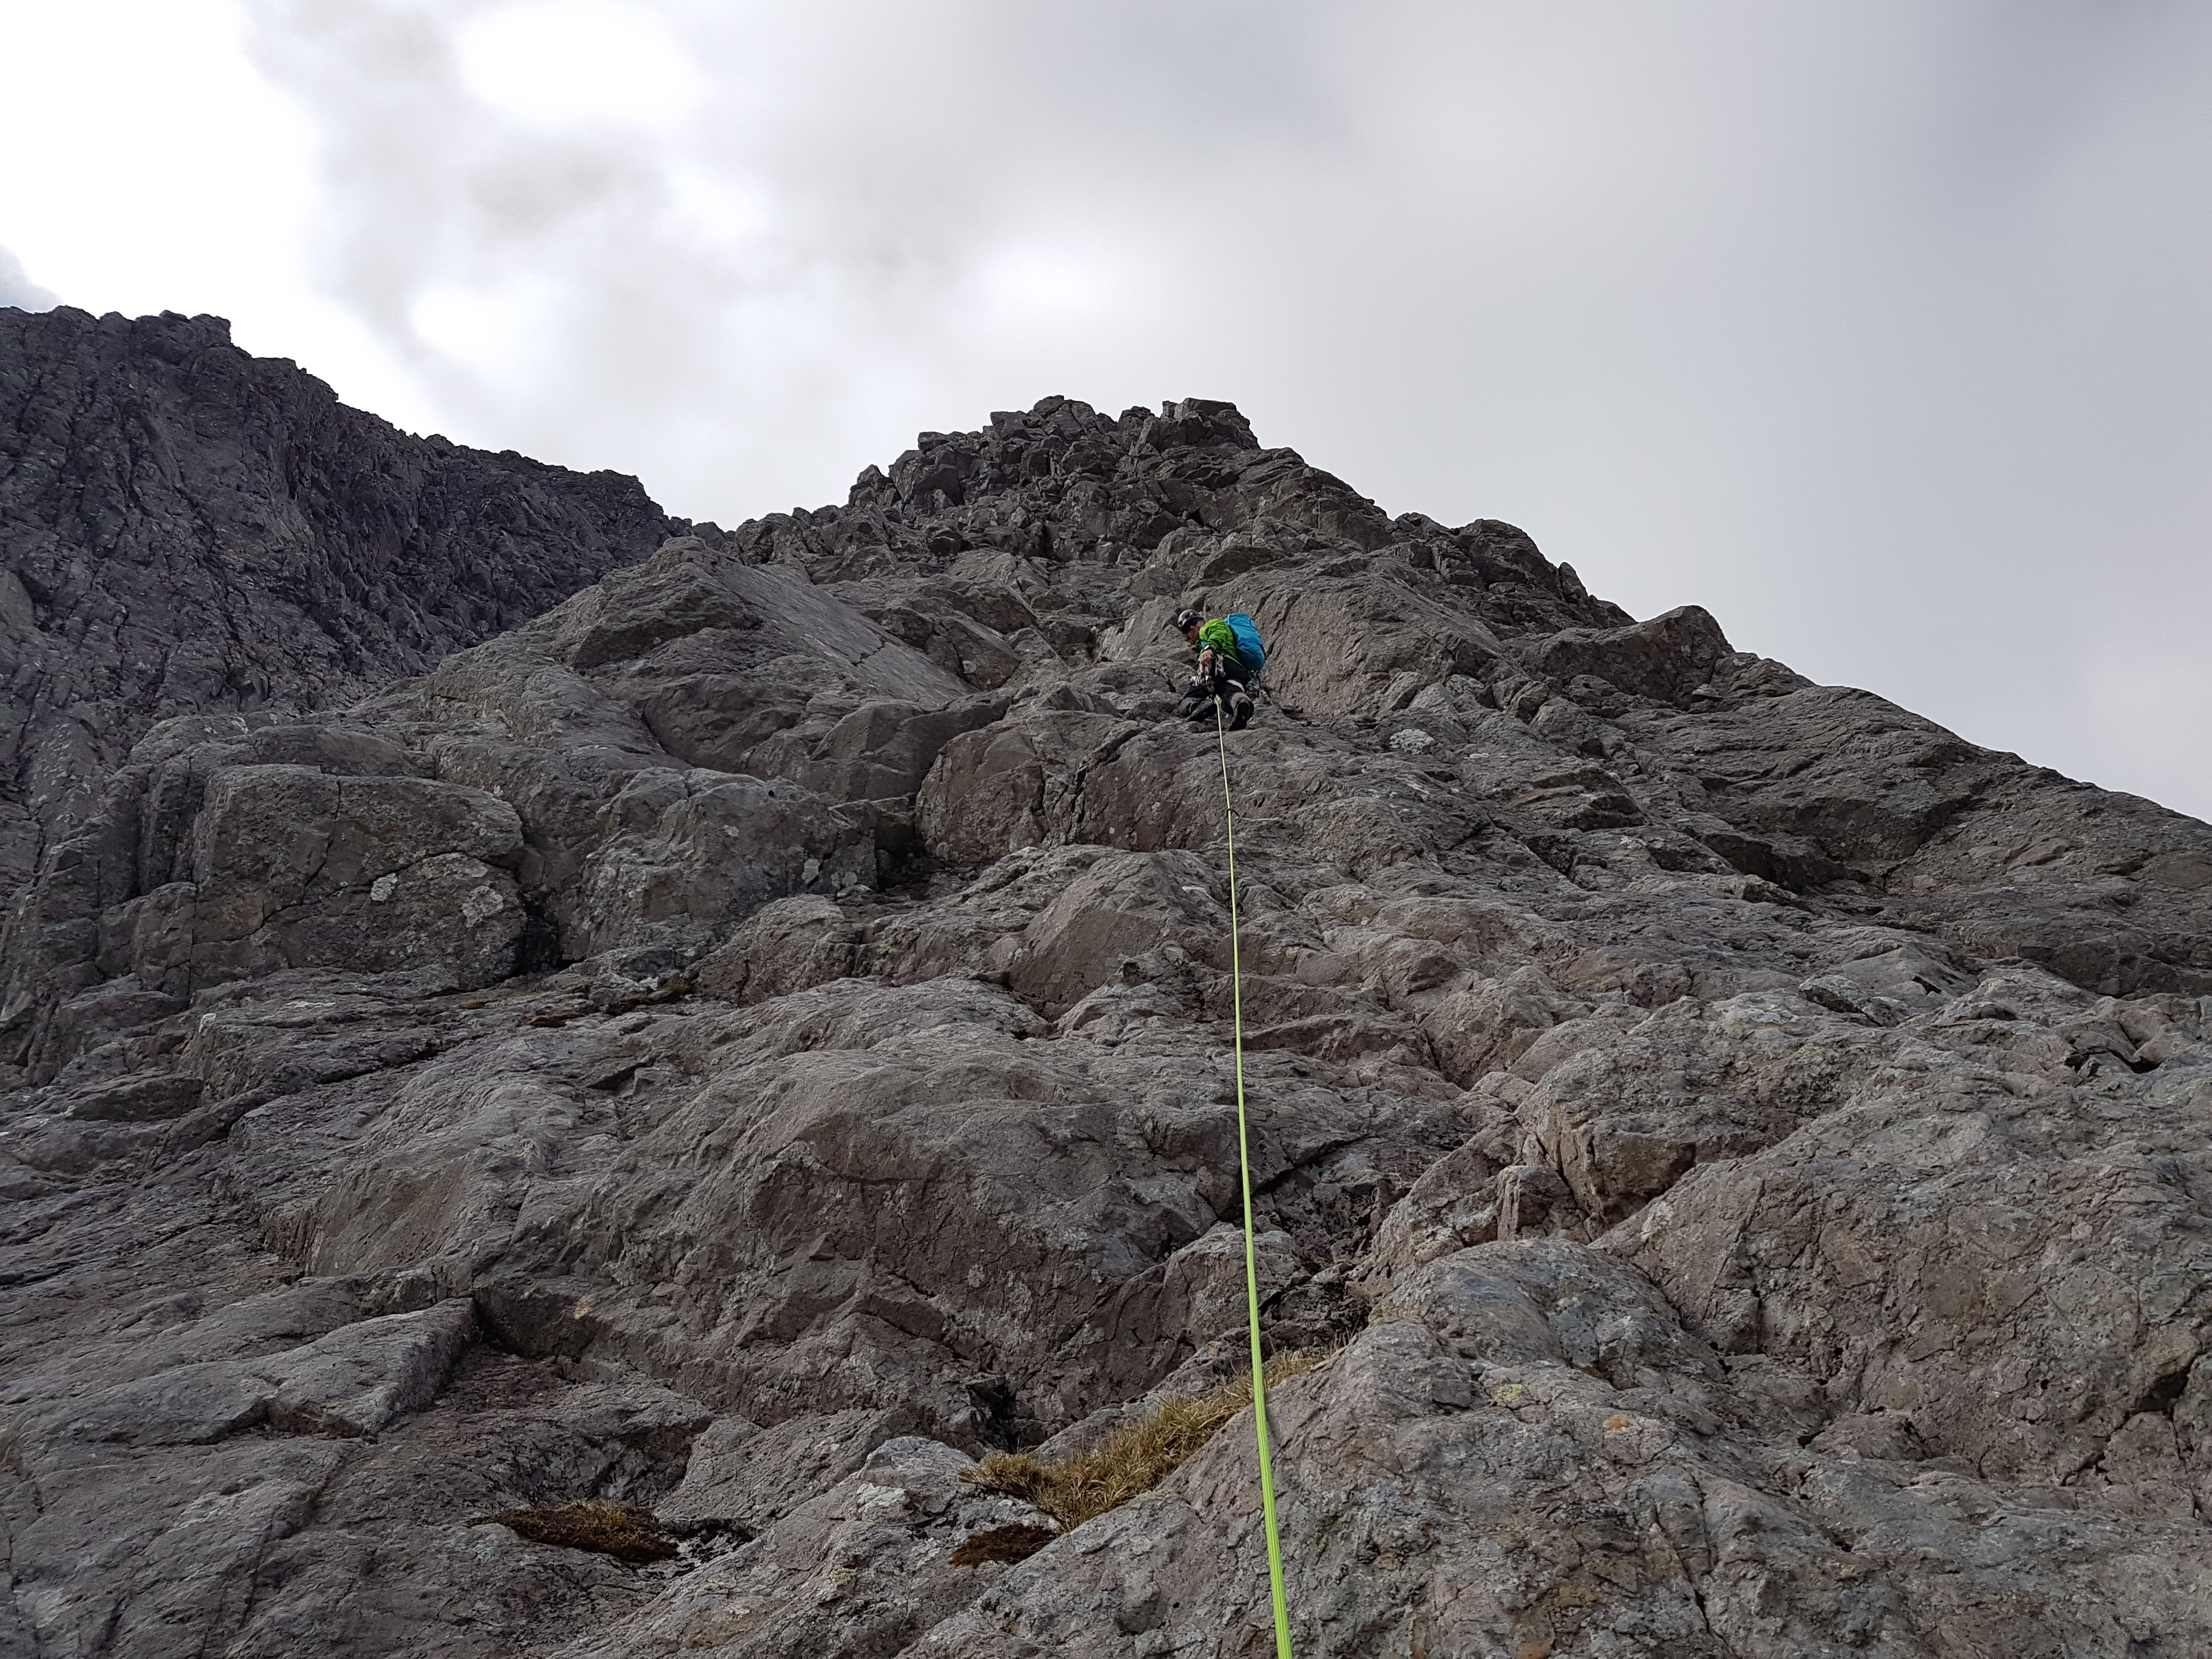 Climb Observatory Ridge, Ben Nevis with an Observatory Ridge Guide from Lochaber Guides. Experience this Great Ridge of Ben Nevis with a qualified professional.